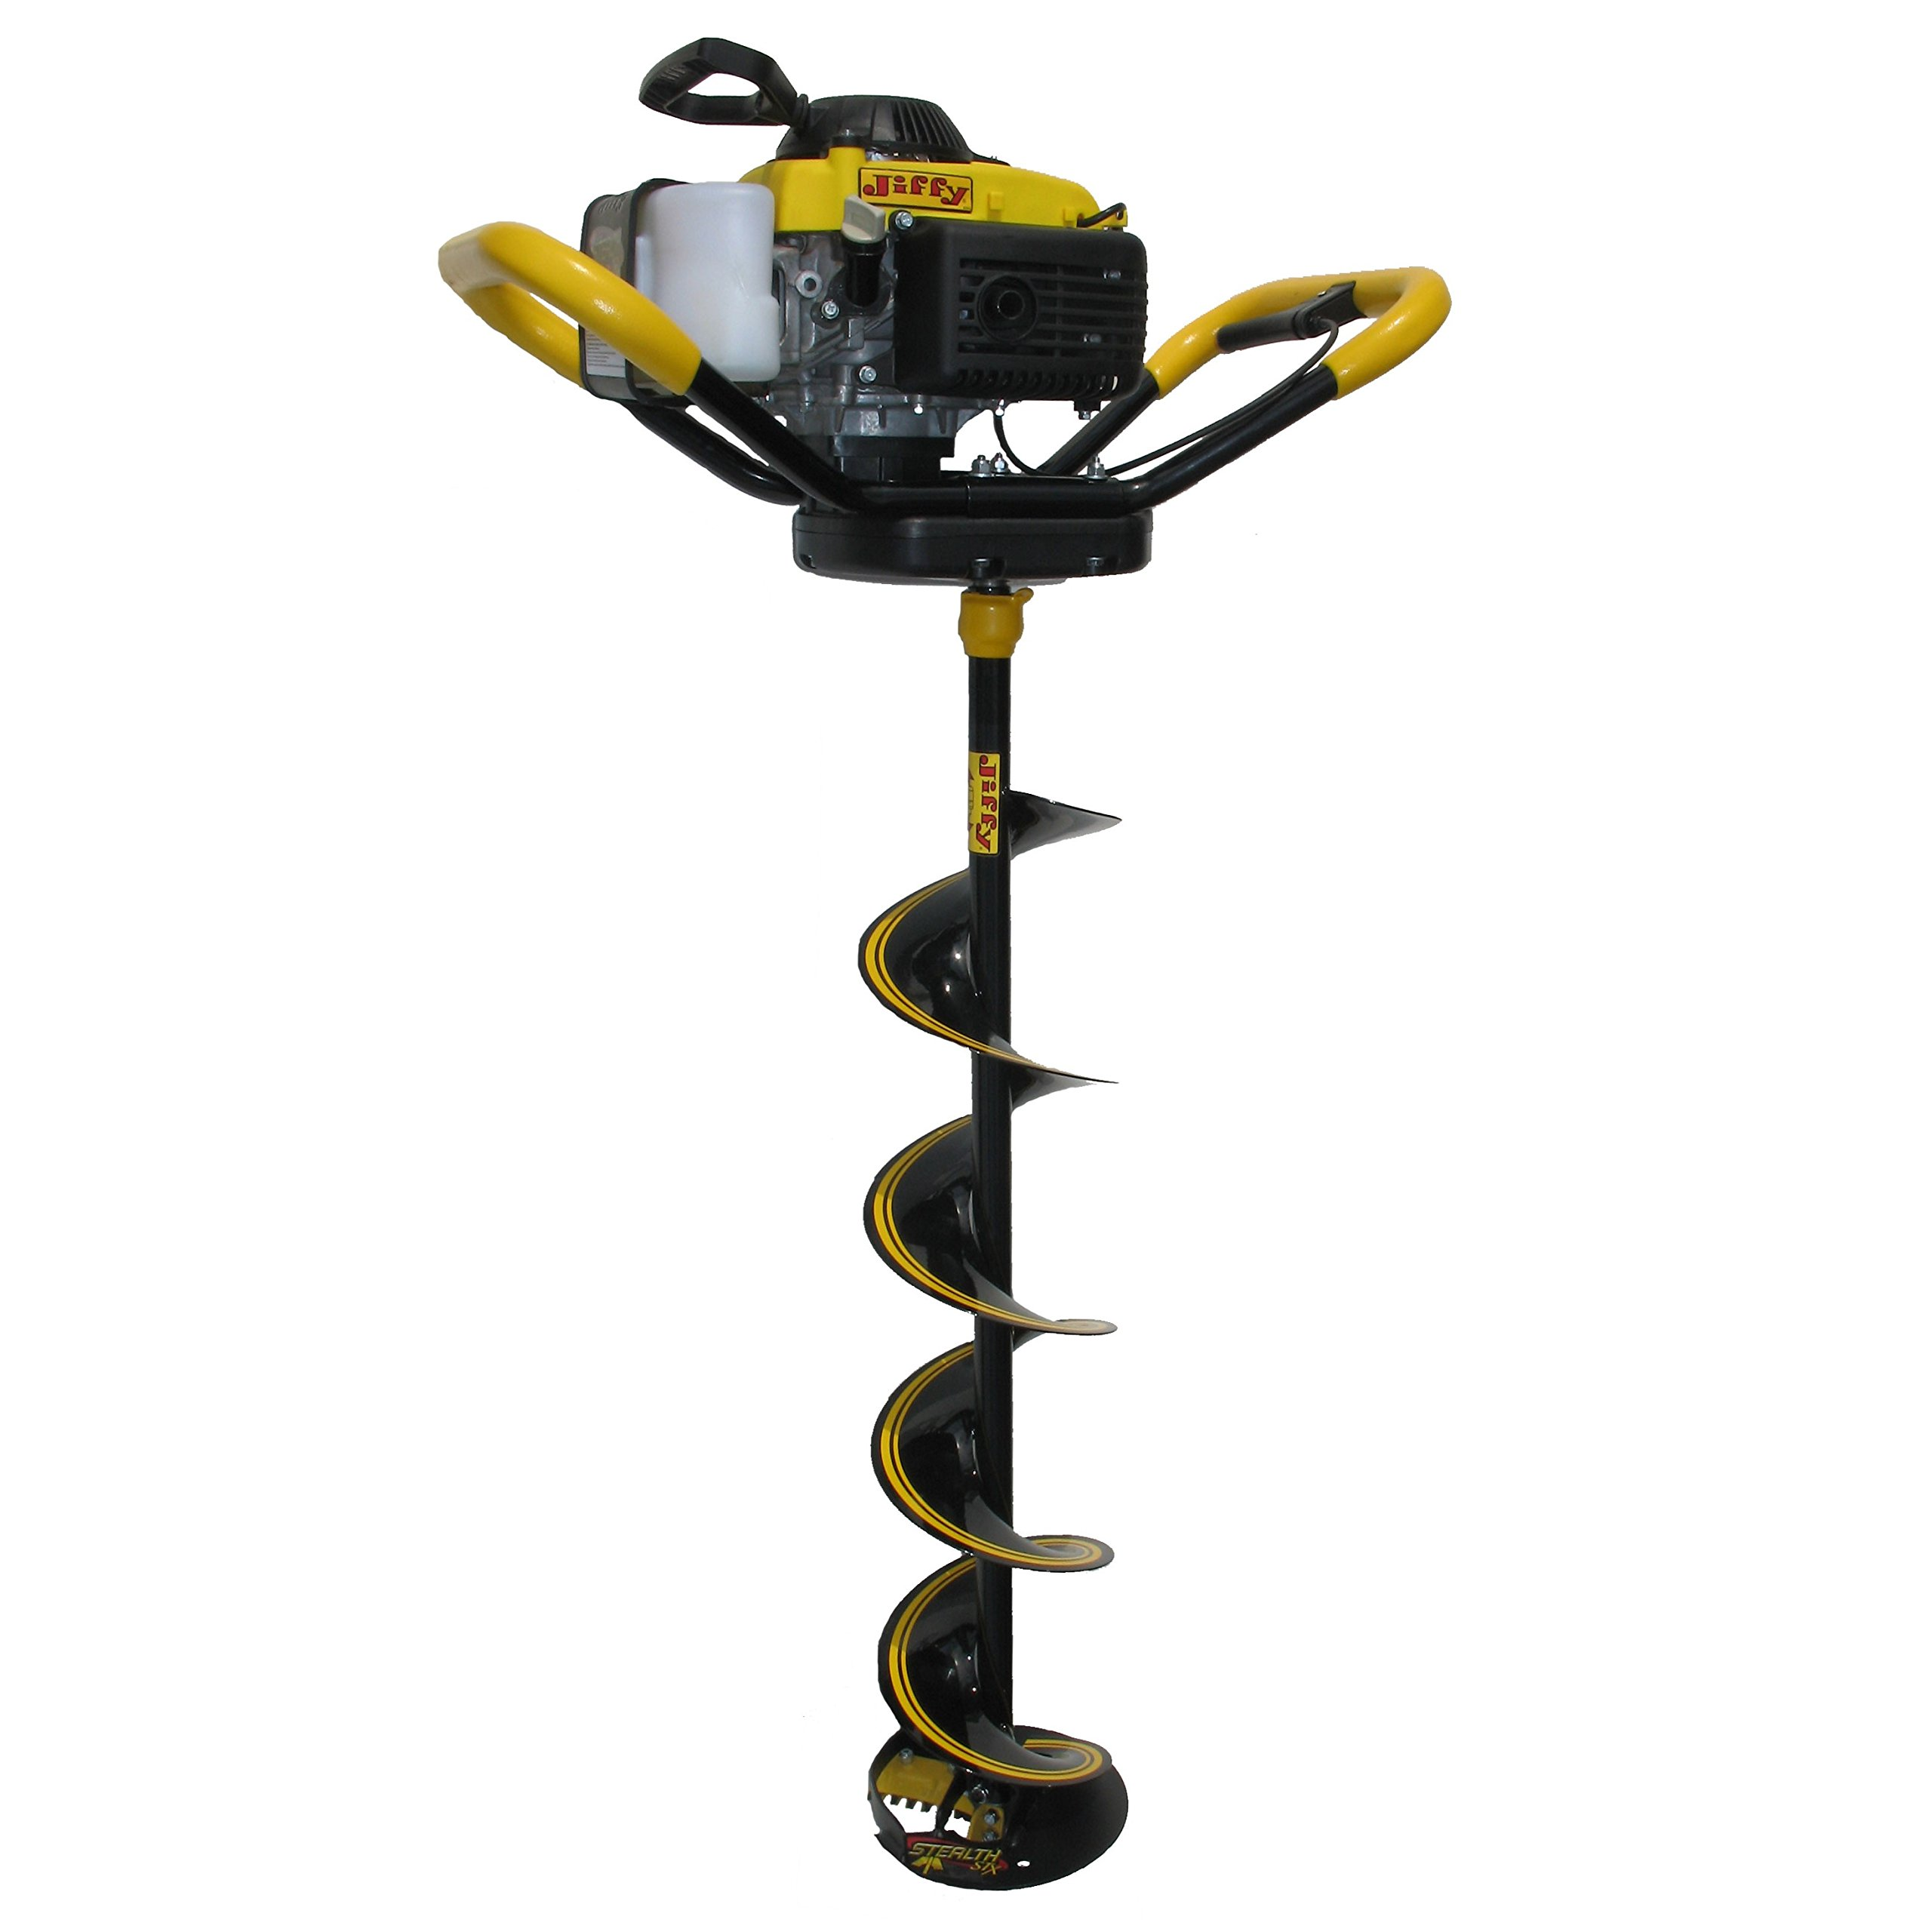 Jiffy 4G Gas Power 6 inch Ice Drill 41-06-ALL